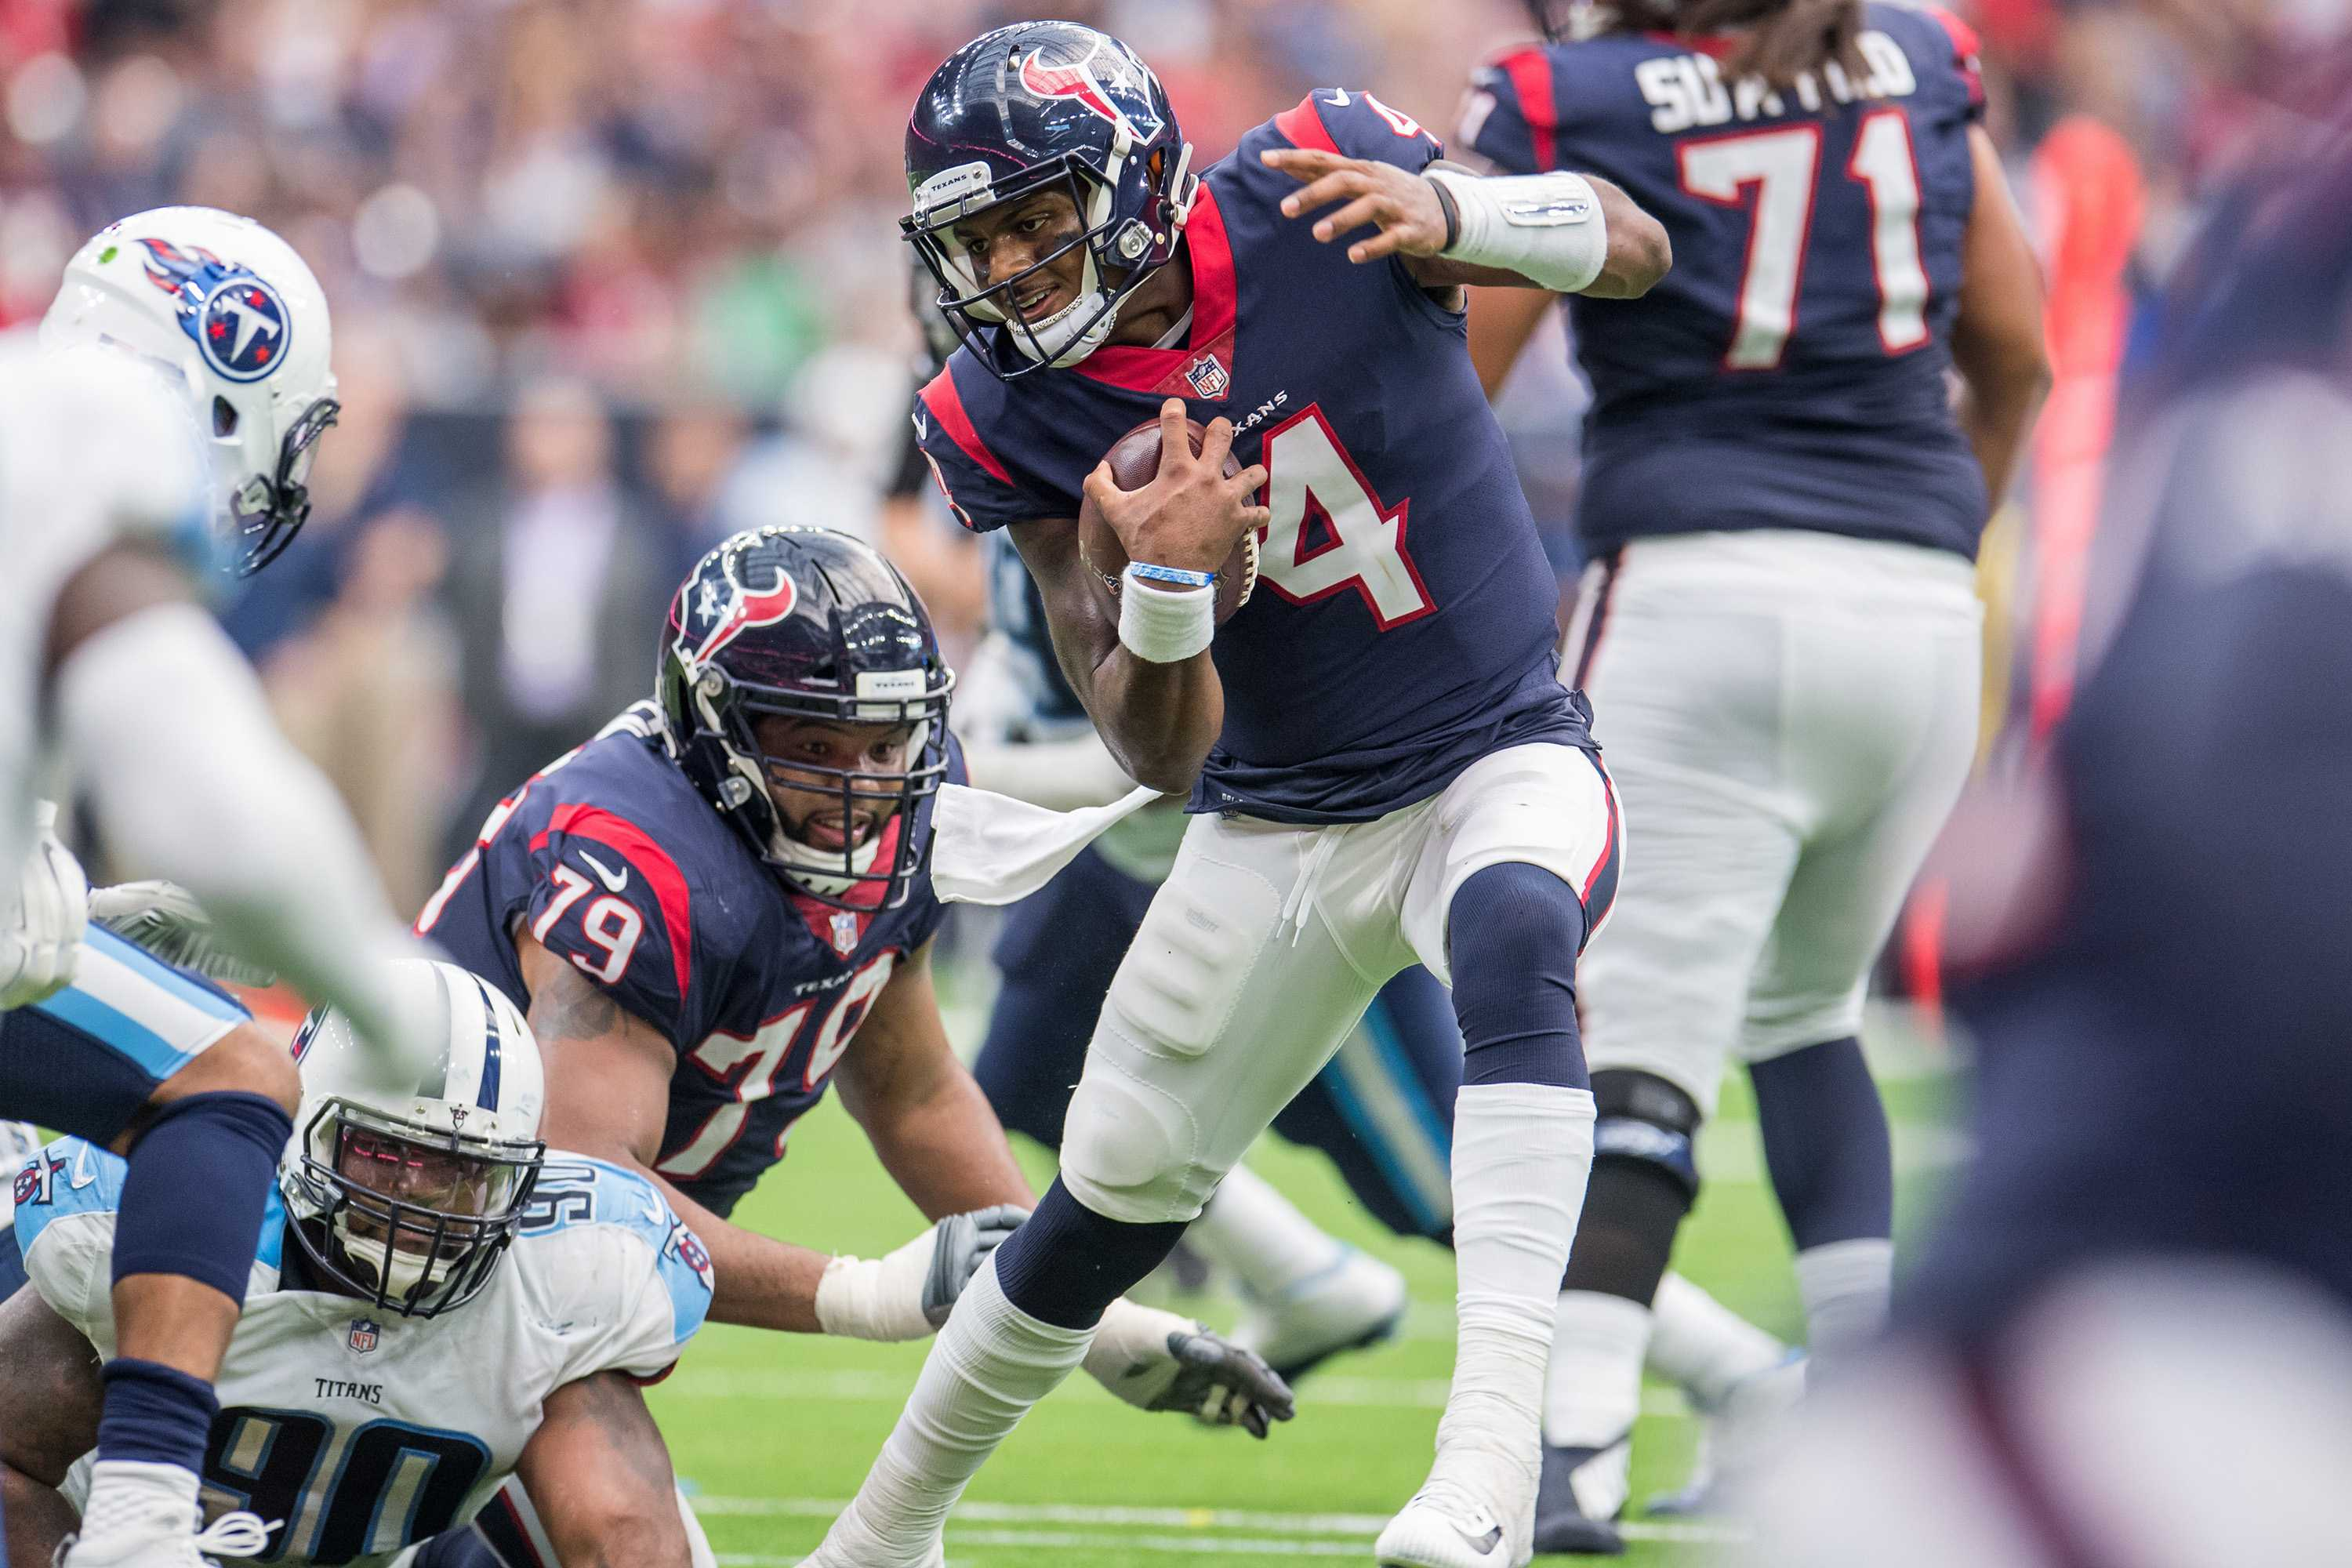 Houston Texans rookie quarterback Deshaun Watson passed for 283 yards with four touchdowns and added a rushing touchdown in the Texans' 57-14 win against the Tennessee Titans on October 1, 2017. Watson is lost for the season with a torn ACL, NFL.com's Ian Rapoport reported. (Trask Smith/Cal Sport Media/NFL Communications/Zuma Press/TNS)